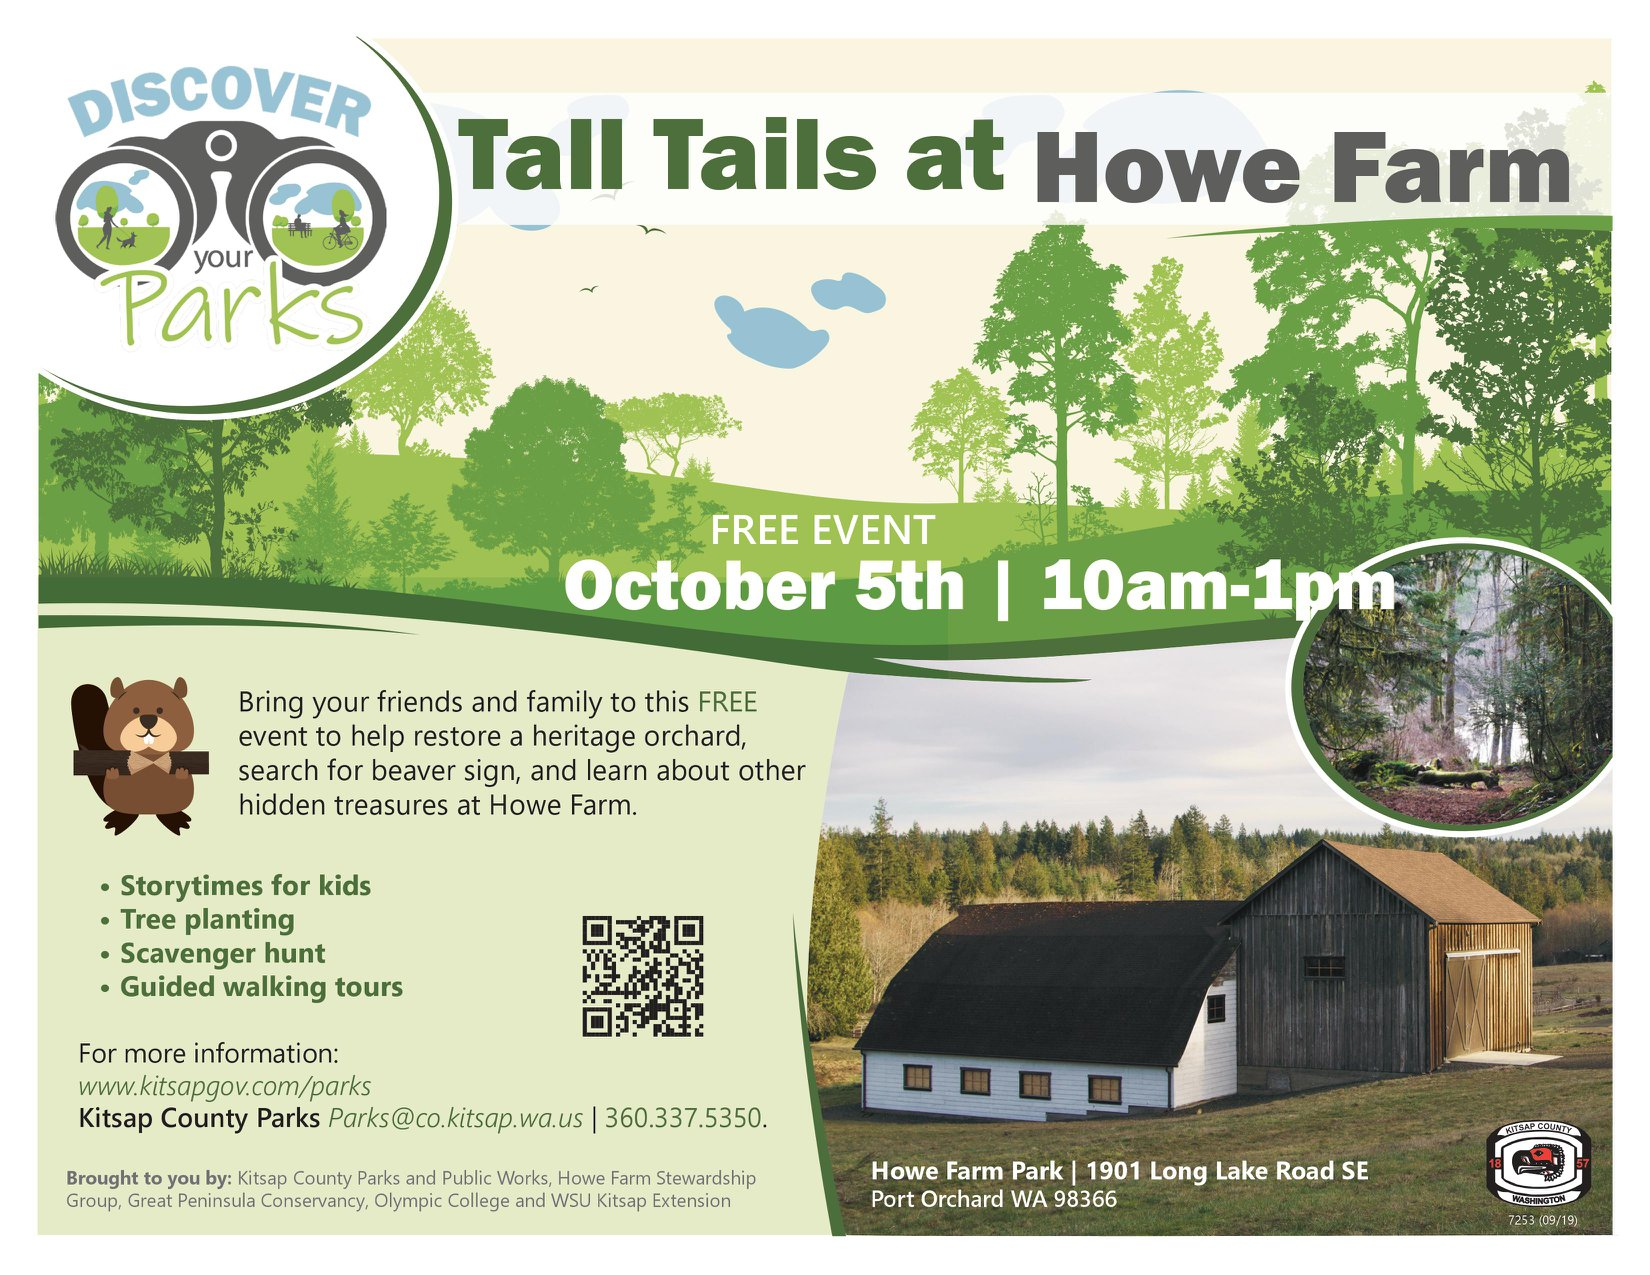 Tall Tails at Howe Farm